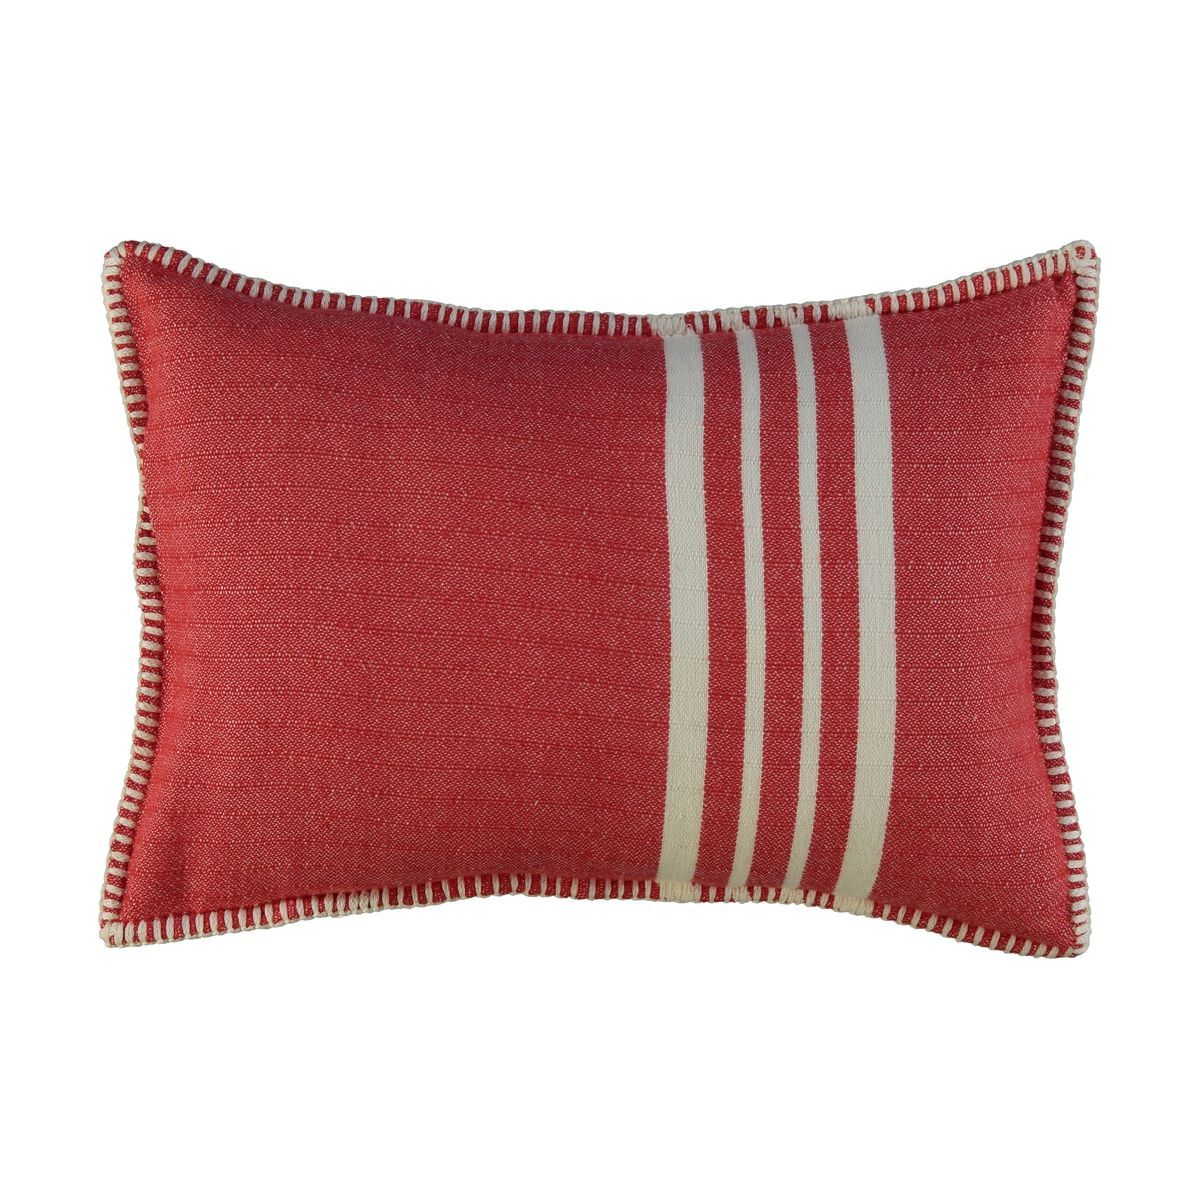 Cushion Cover Sultan - Red / 30x40